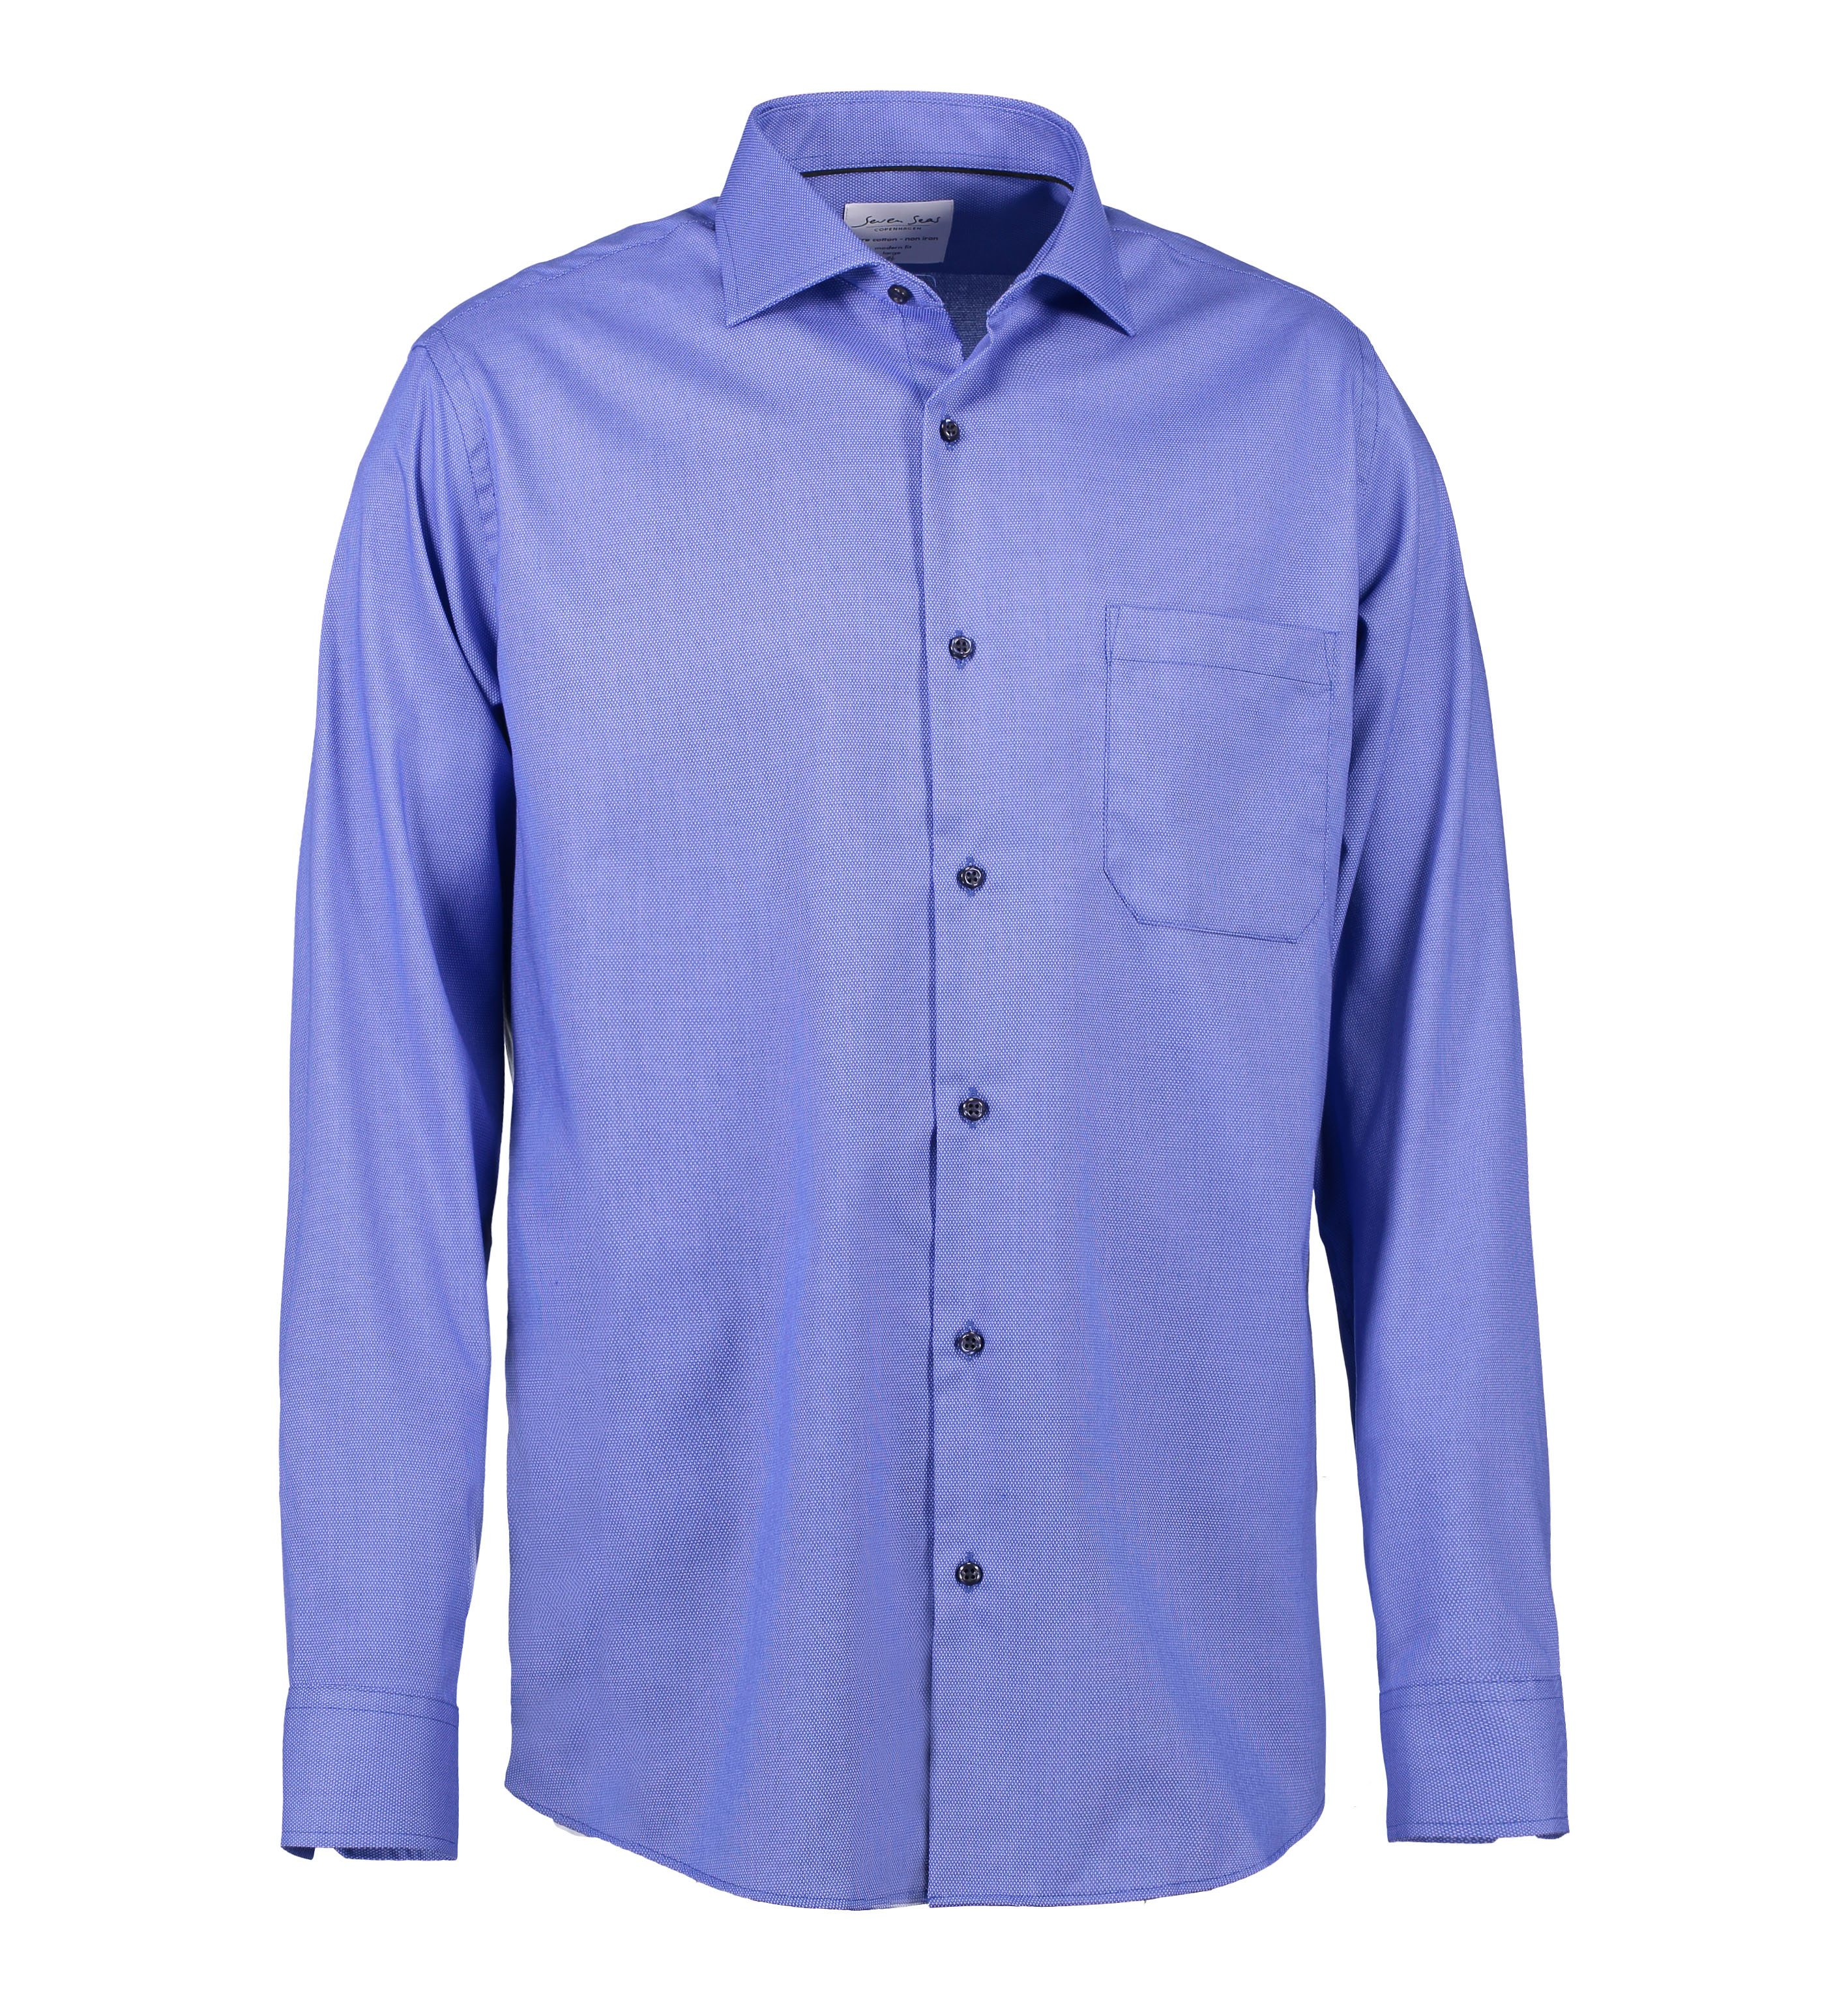 SS310 Dobby | Royal Oxford | L/S Mod fit i French Blue